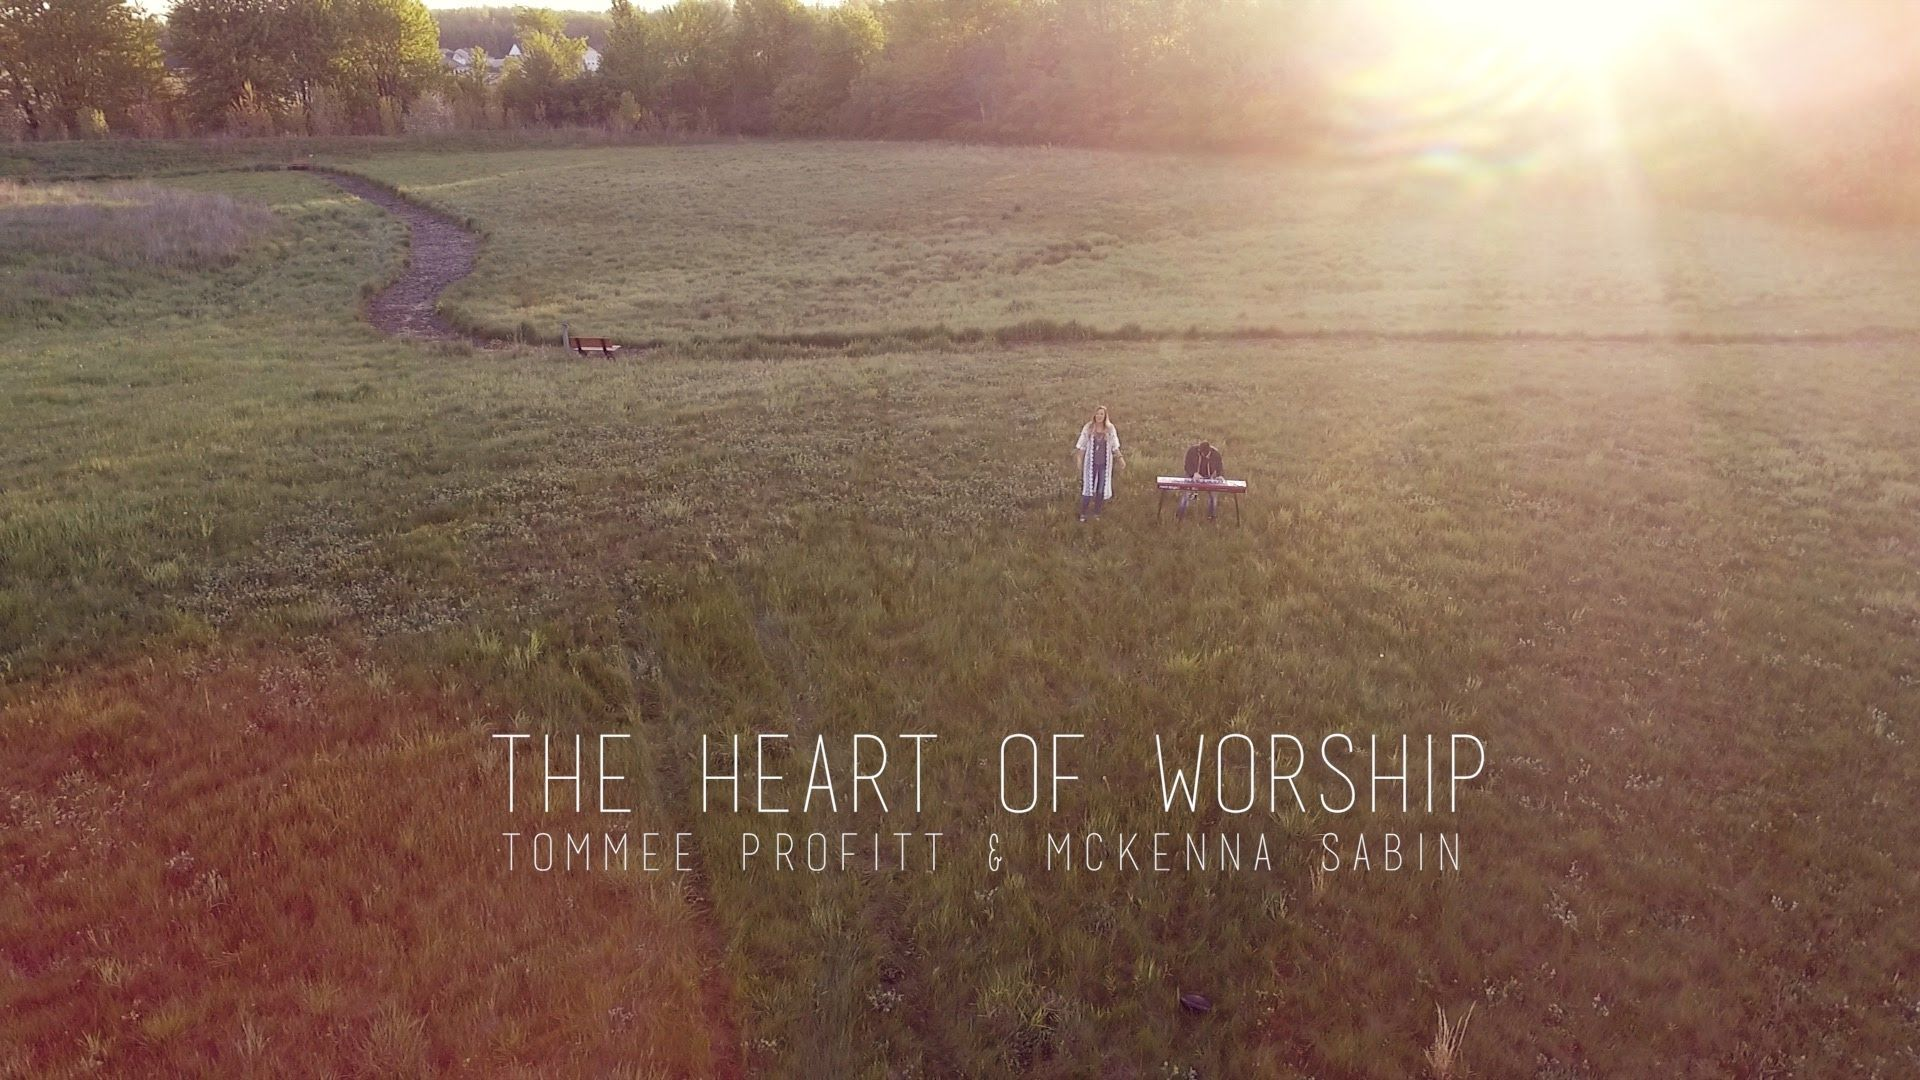 The heart of worship matt redman worship cover by tommee the heart of worship matt redman worship cover by tommee profitt mckenna hexwebz Gallery